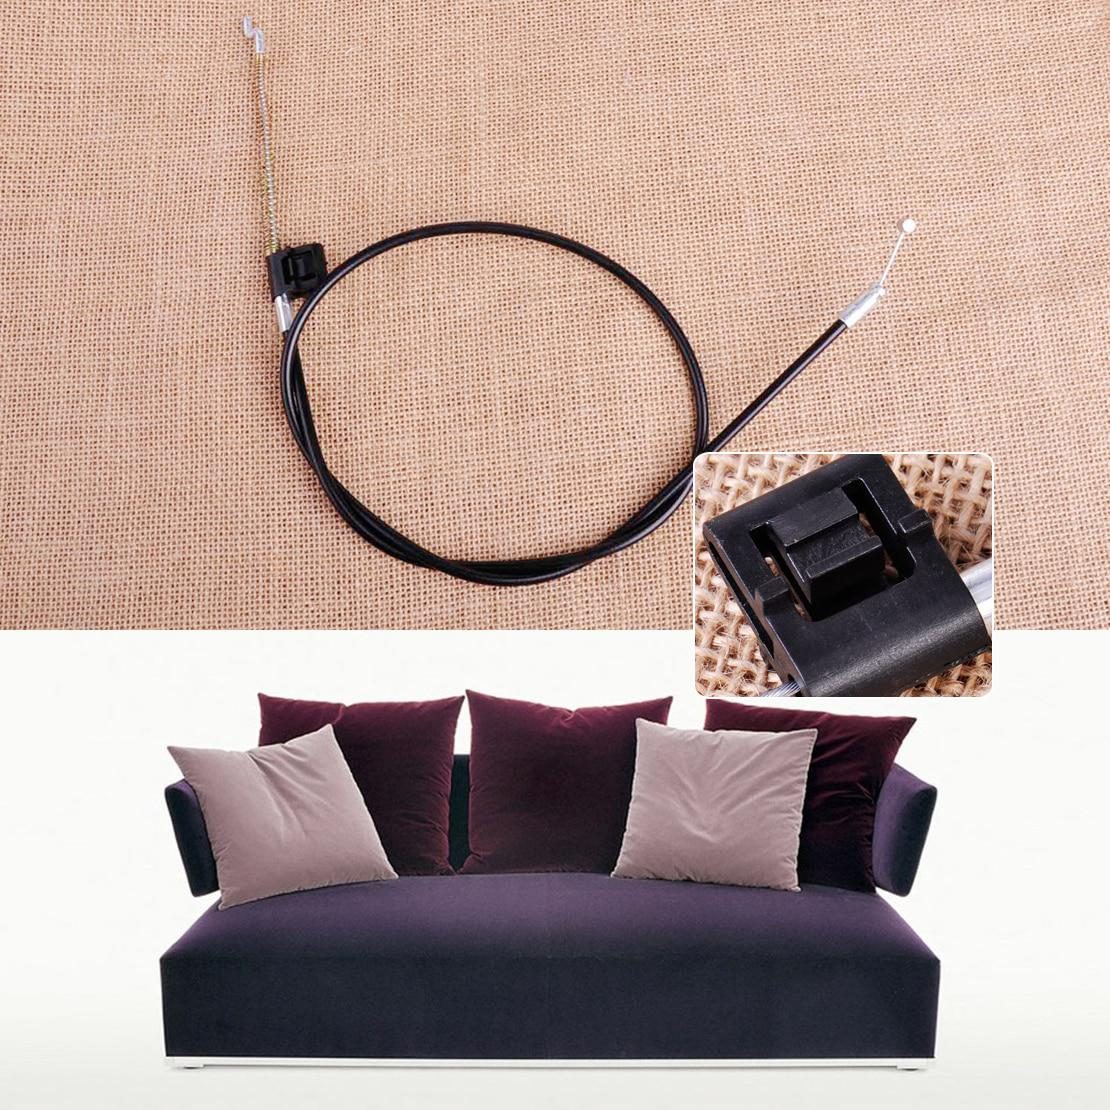 Outstanding New Metal Recliner Chair Sofa Handle Cable Couch Release Lever Replacement Cable Us 2 32 Alphanode Cool Chair Designs And Ideas Alphanodeonline